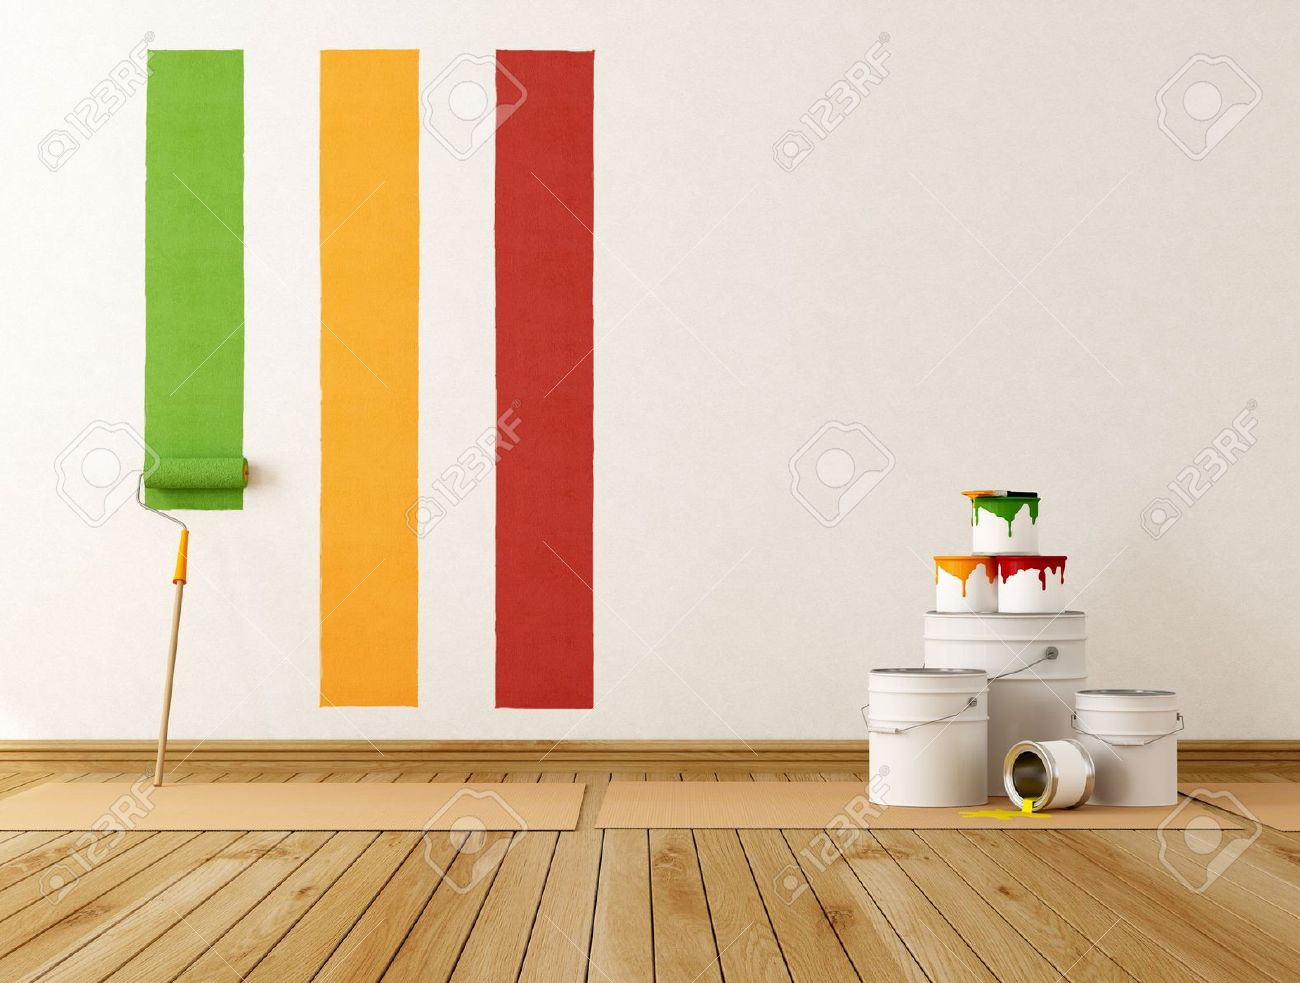 select color swatch to paint wall - rendering Stock Photo - 14274918